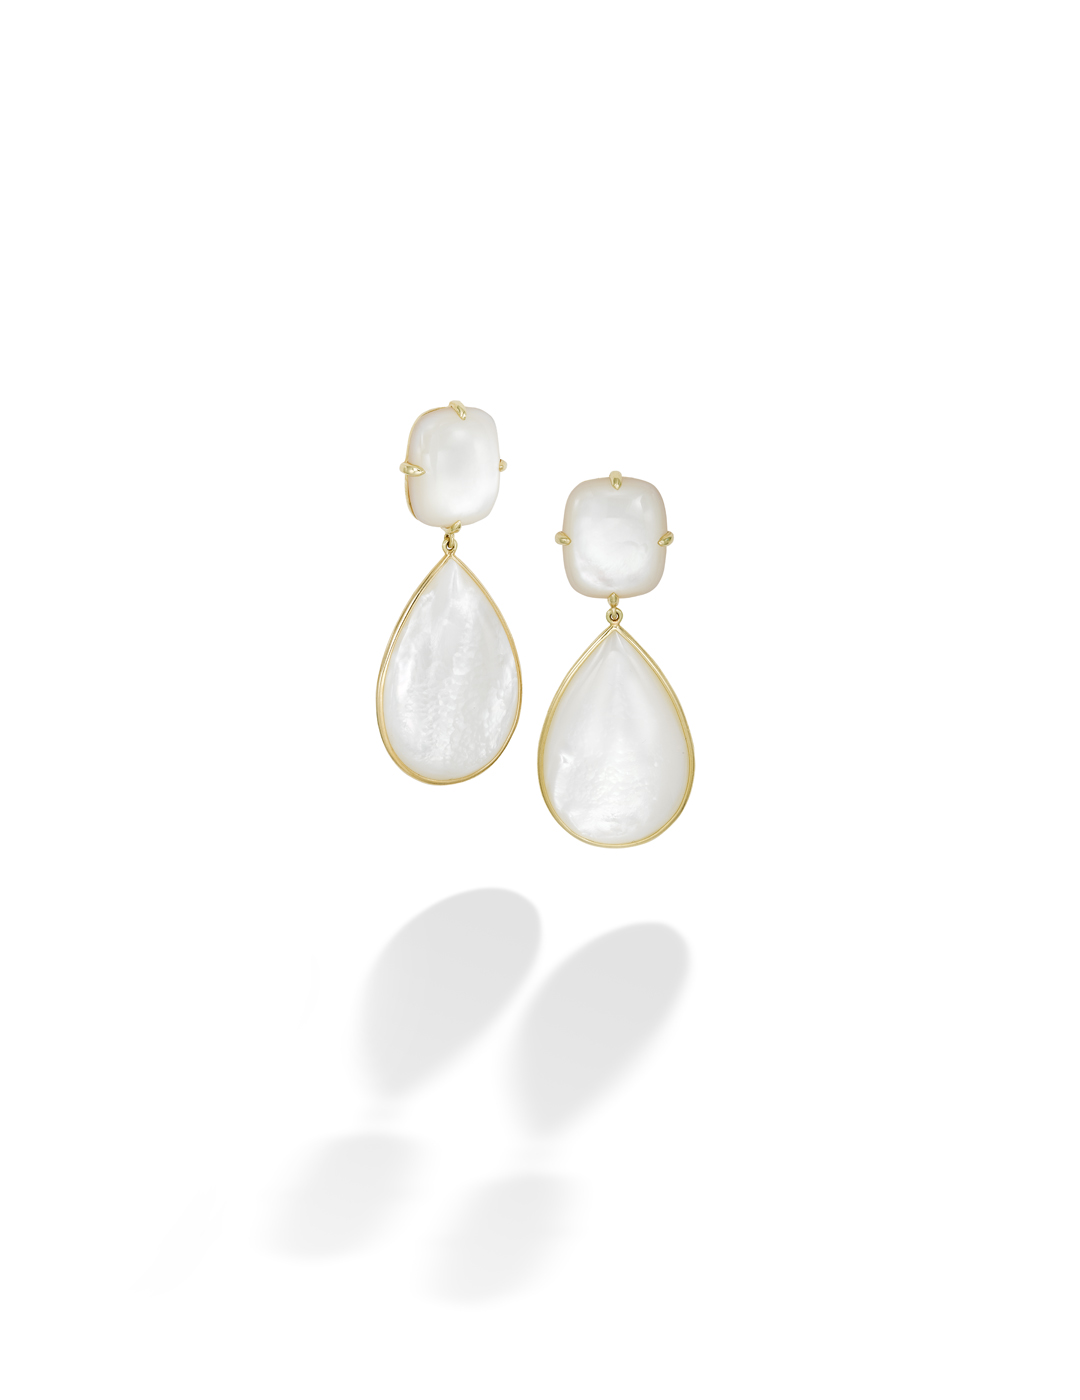 mish_products_earrings_Roadster-MOP-ER-1